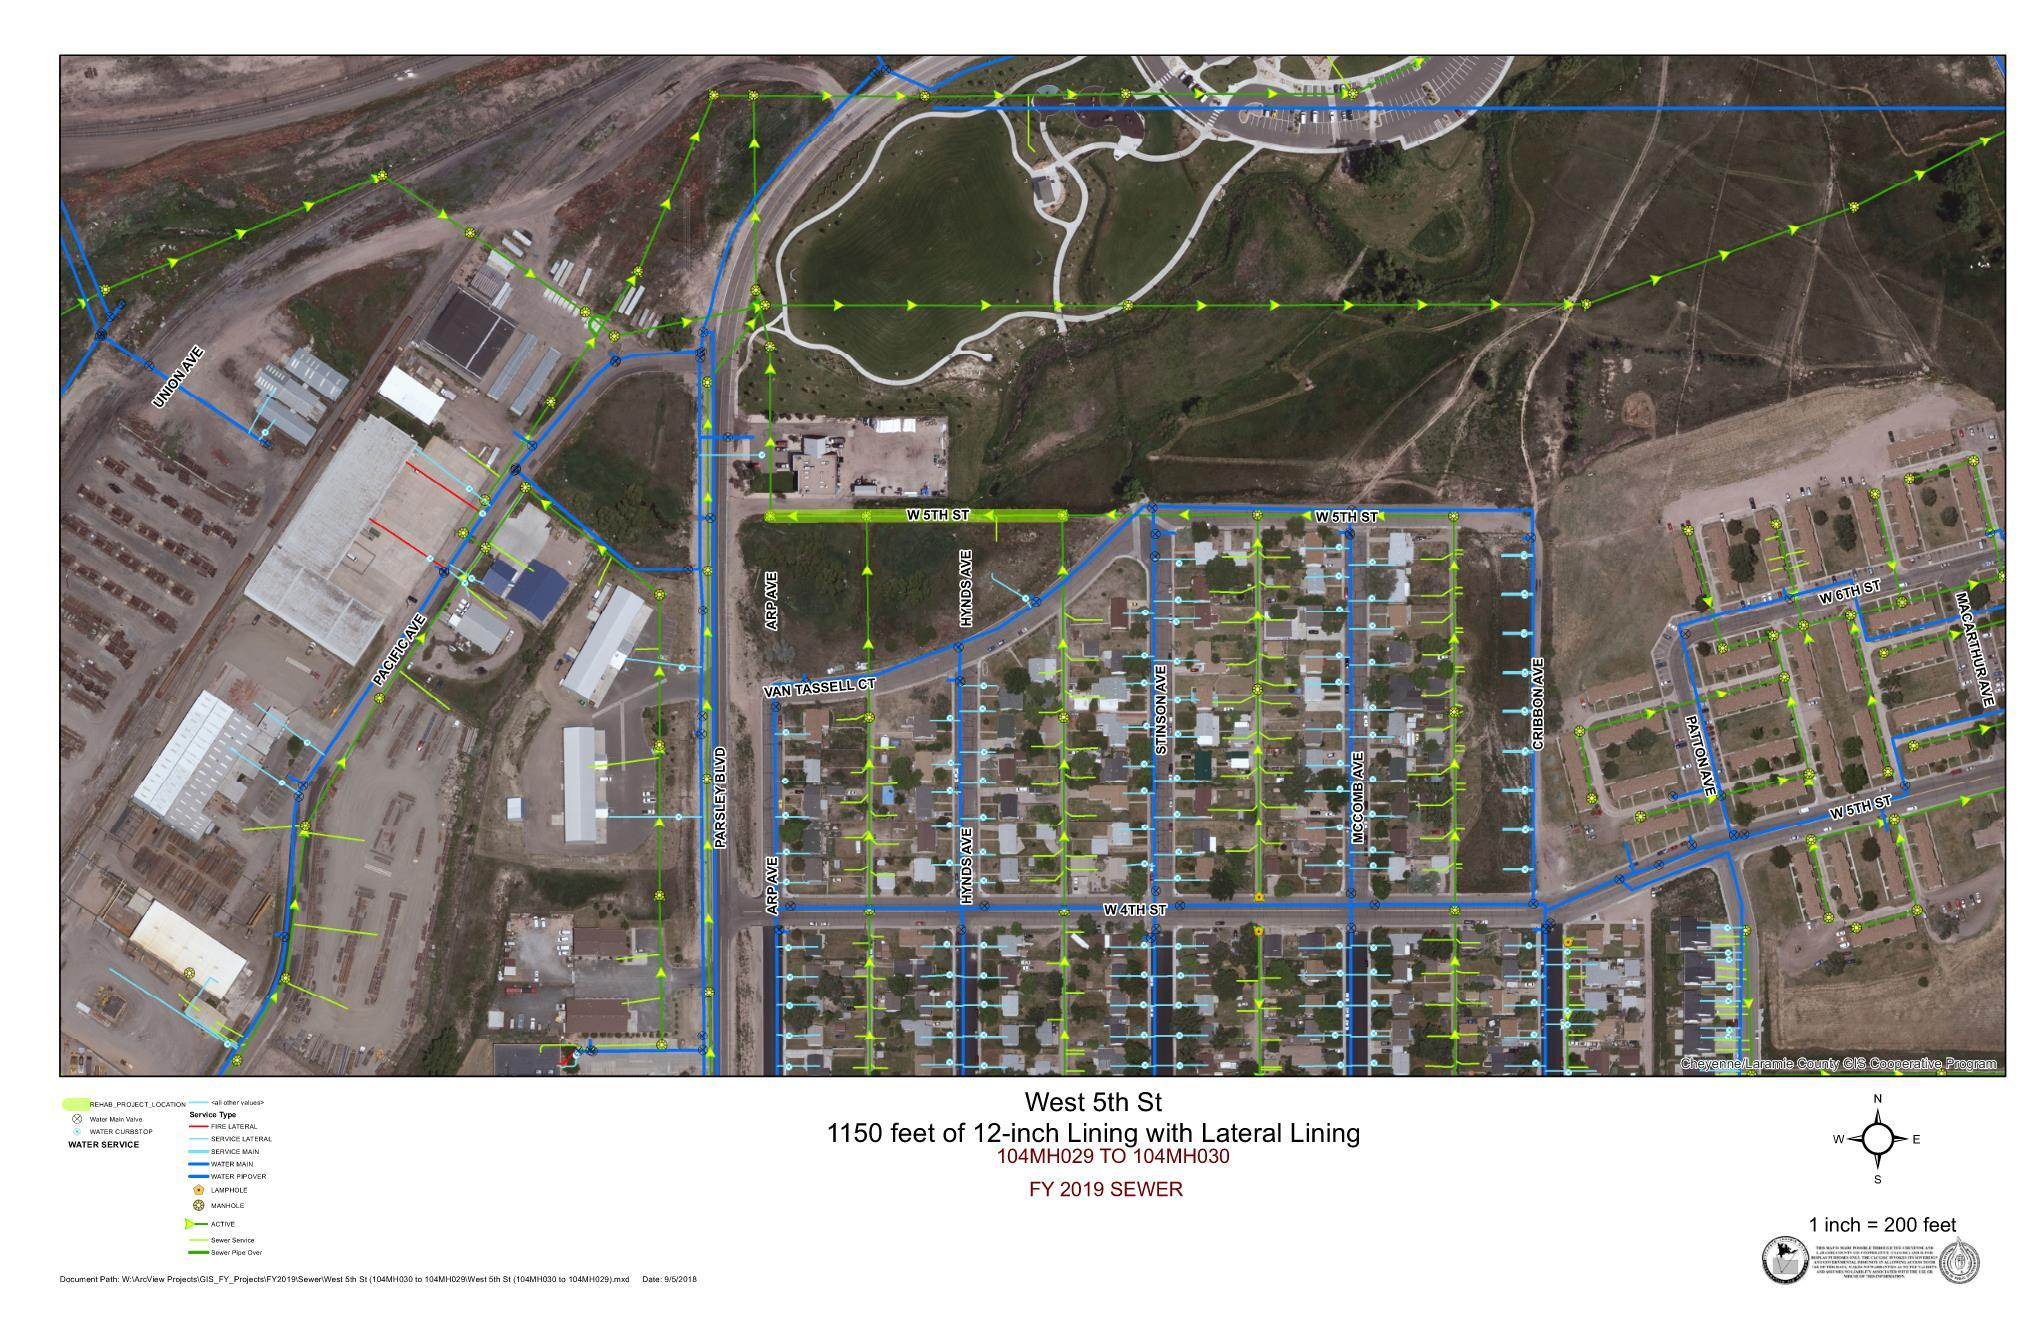 FY19-Sewer-Rehab-West-5th-St.jpg